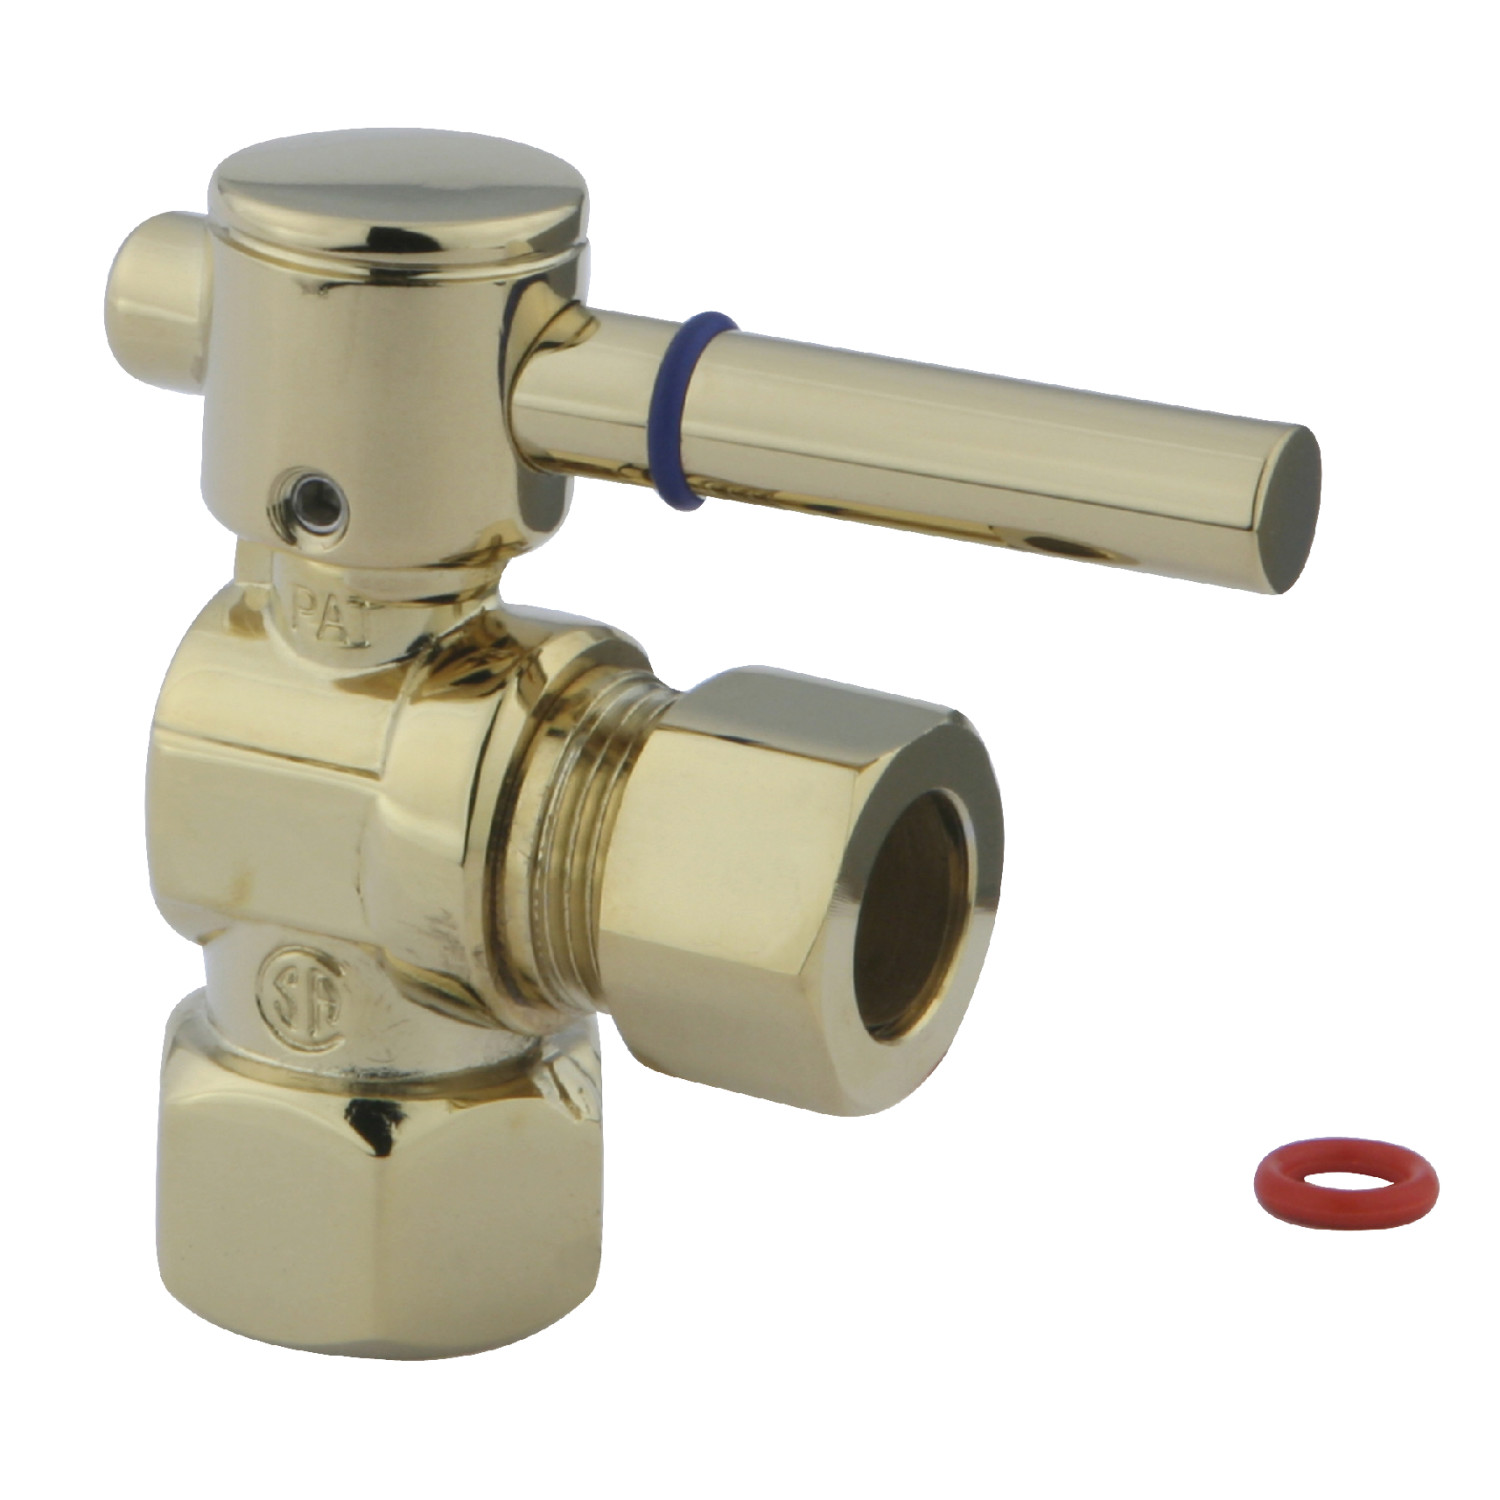 Elements Of Design Ecc44402dl 1 2 Inch Fip X 1 2 Inch Od Comp Angle Stop Valve Polished Brass Elements Of Design